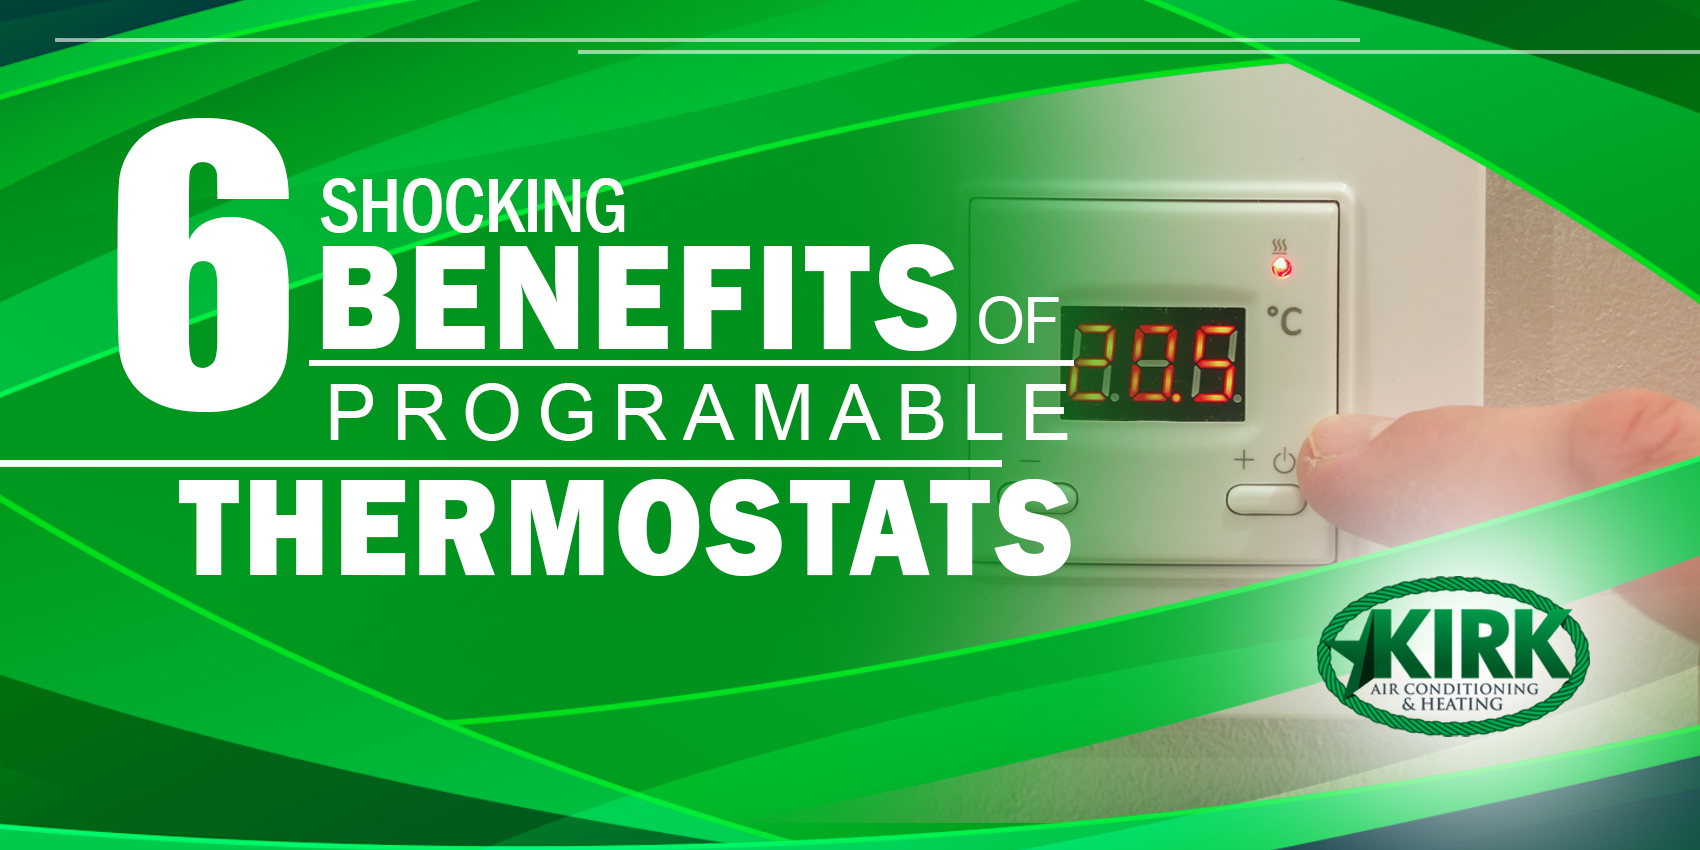 6 Shocking Benefits of Programmable Thermostats